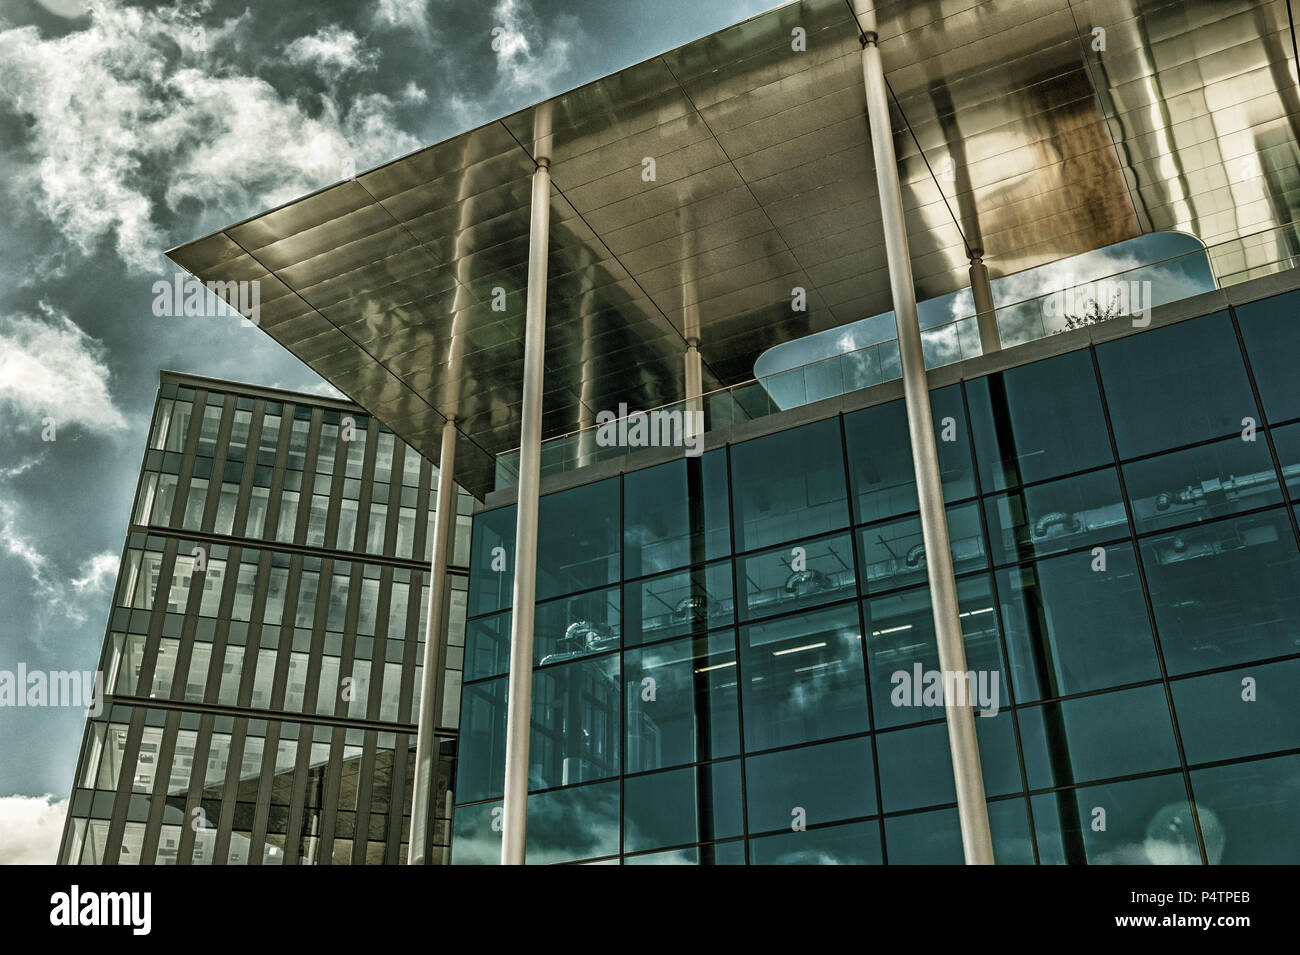 bbc-hq-cardiff-south-wales-P4TPEB.jpg